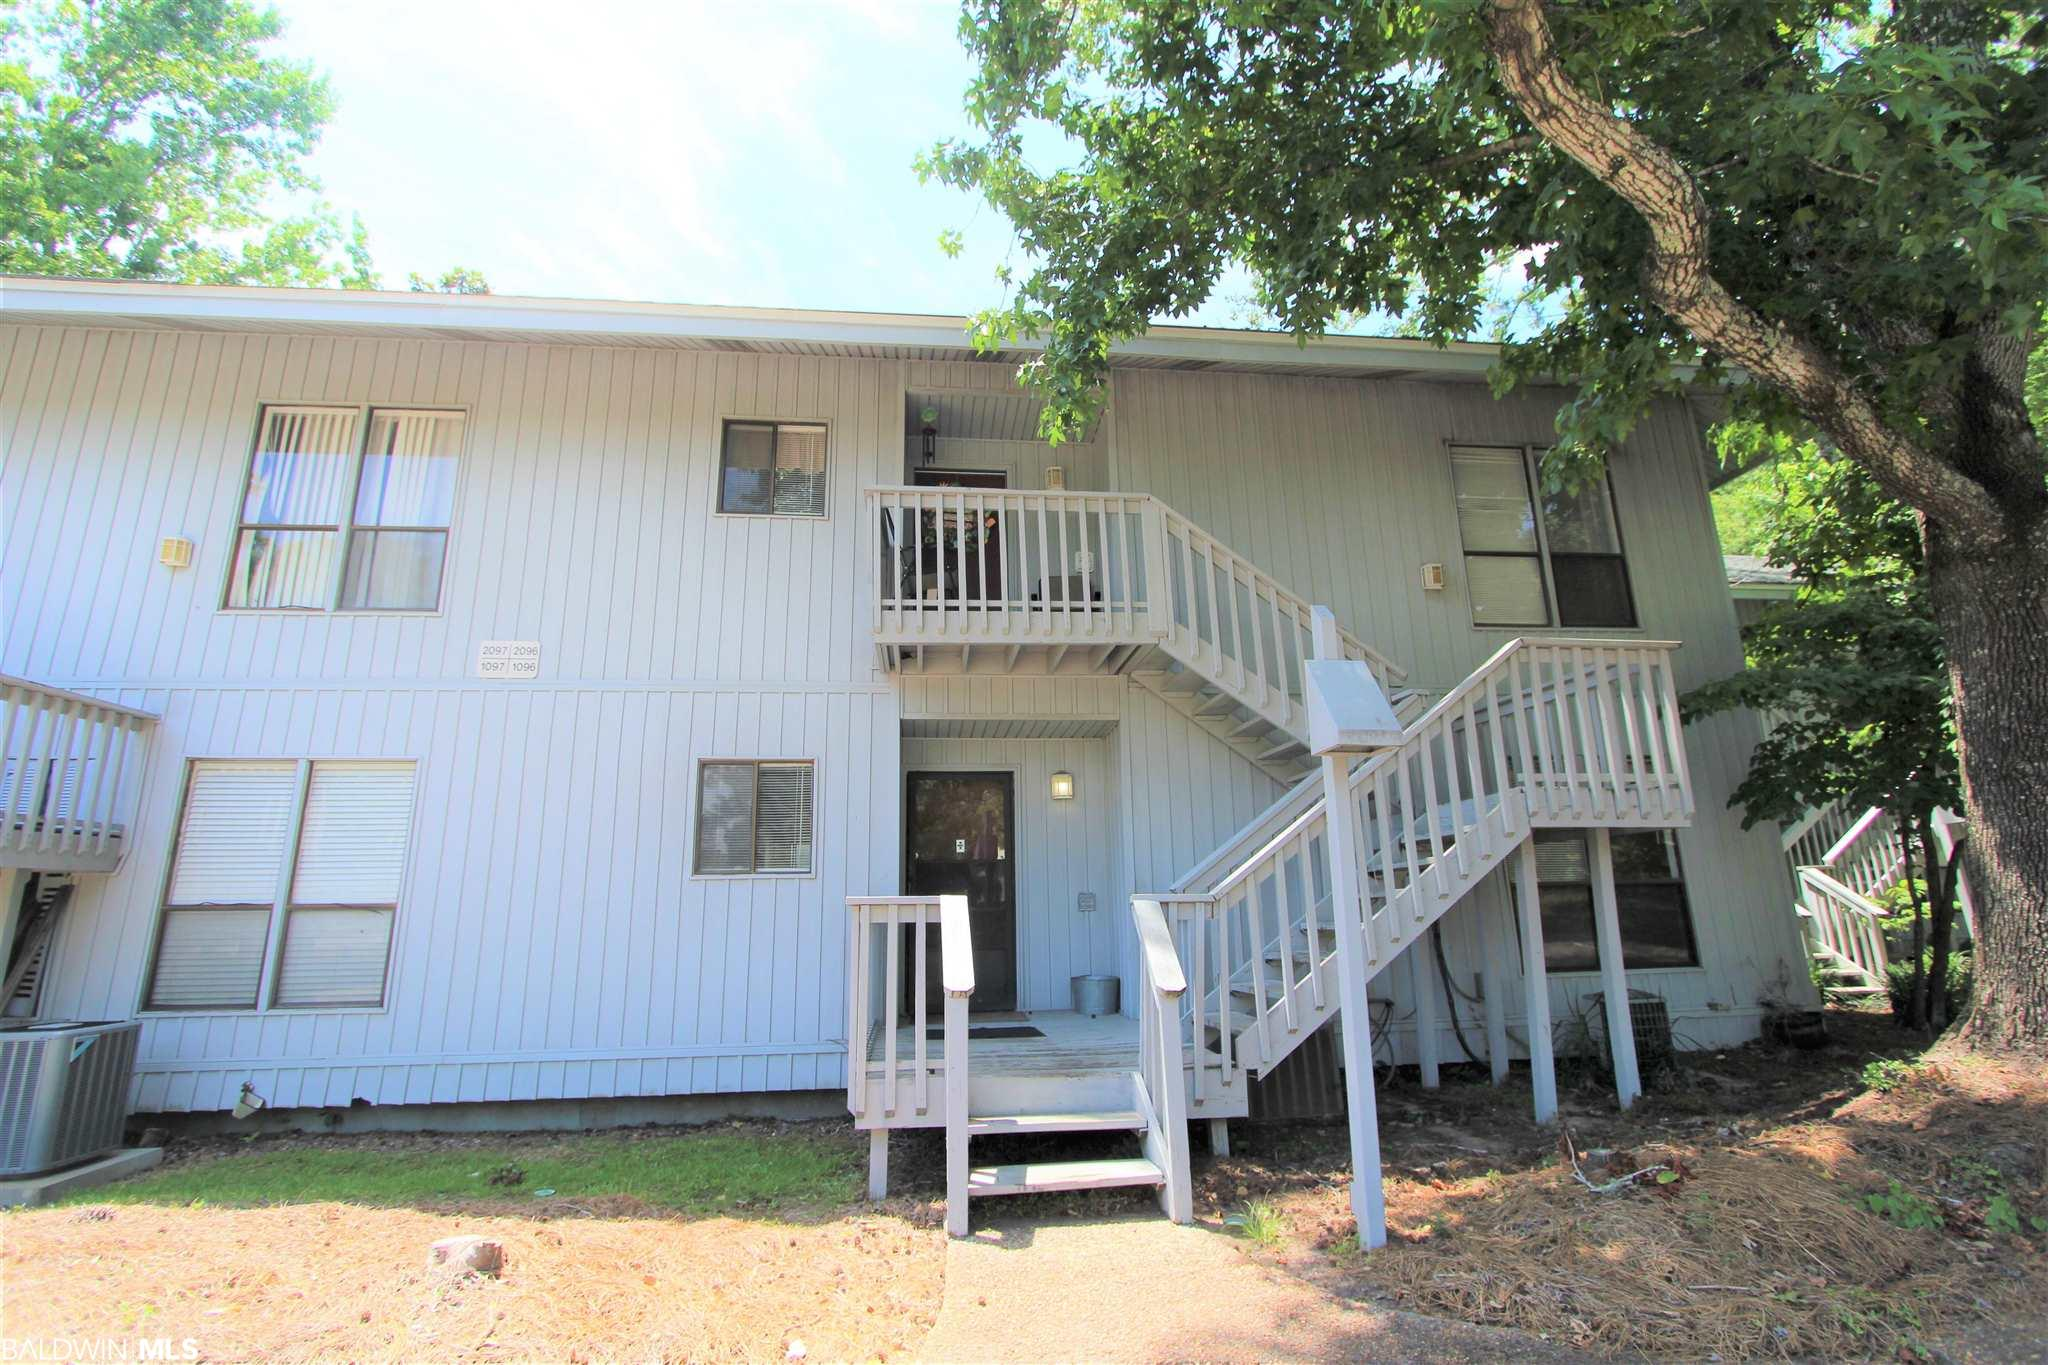 Great starter home or investment property in prime location.  Sea Cliff South is only one mile from I-10 in Daphne and convenient to shopping, restaurants, and schools.  This 2 bedroom 2 bath unit with balcony overlooking the courtyard offers laminate flooring thru-out living areas, open plan, new AC unit, and 2 parking spaces.  Neutral colors thru-out, laundry closet, and refrigerator, washer, and dryer remain. Building exterior insurance, and trash are covered thru HOA dues of $173 per month.  Call for a showing as this property will not last long.   All information provided is deemed reliable but not guaranteed. Buyer or buyer's agent to verify all information.